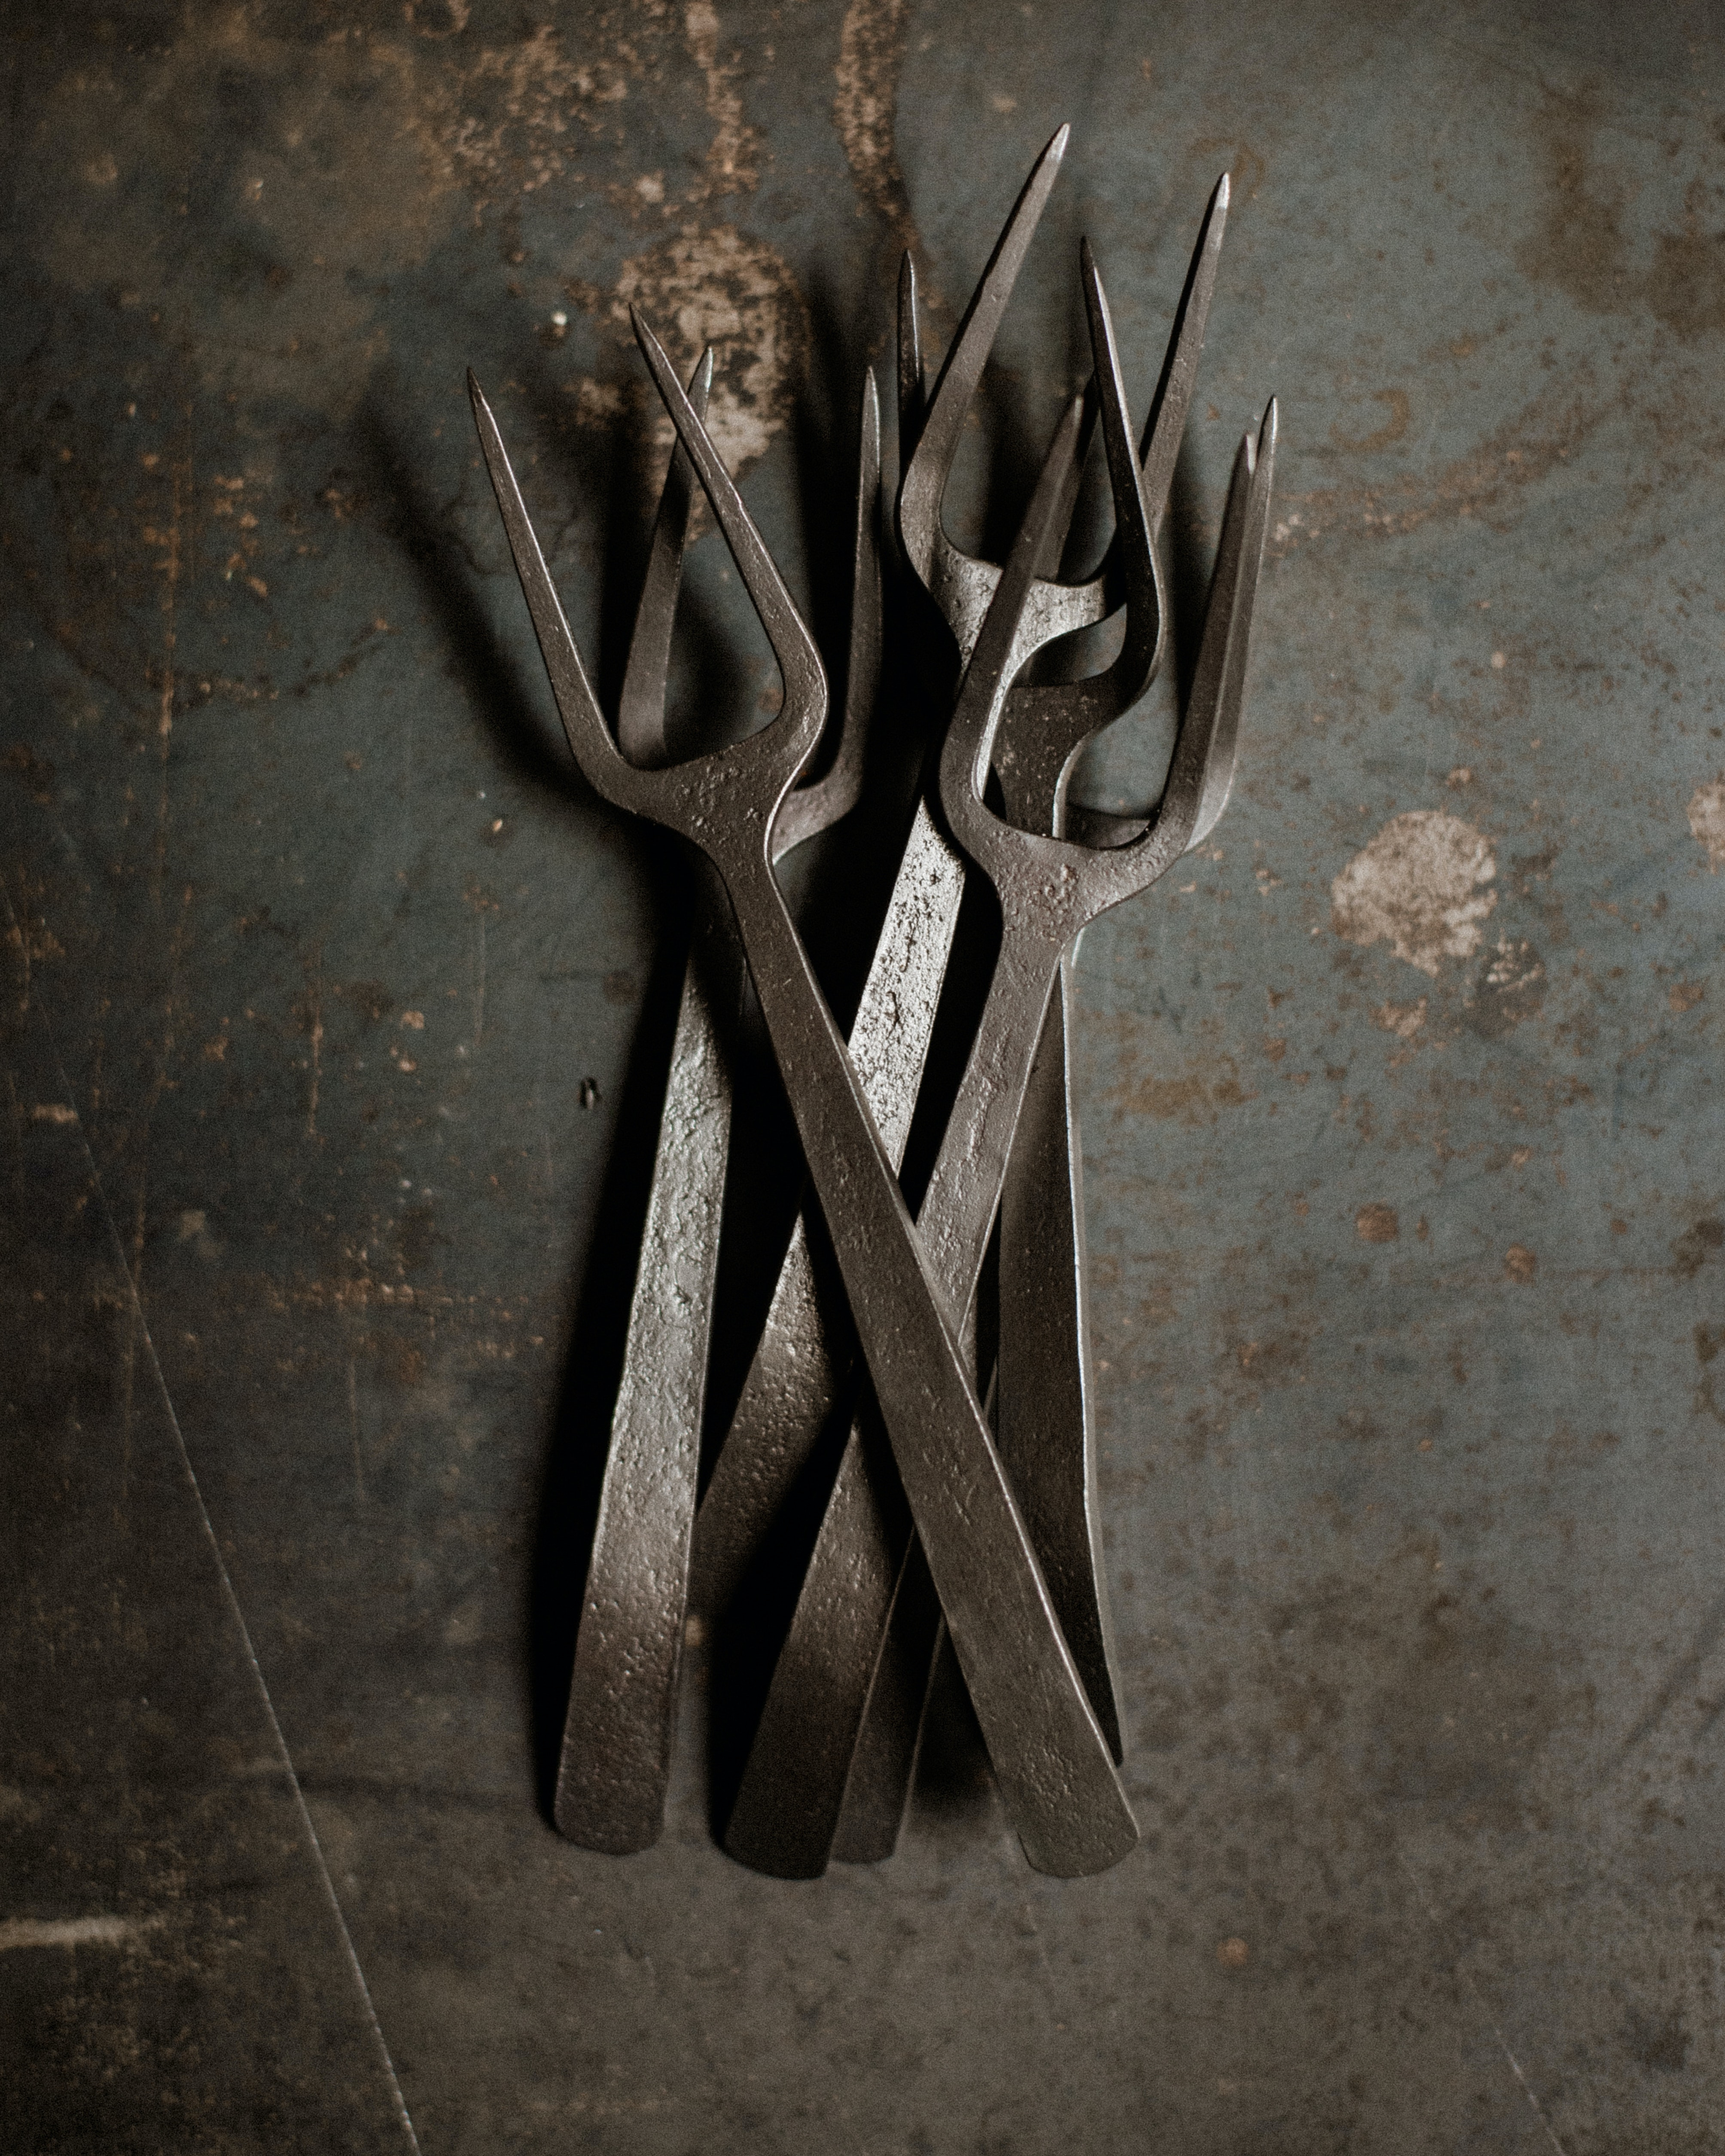 Set of handmade two pronged iron appetizer forks on industrial gray background